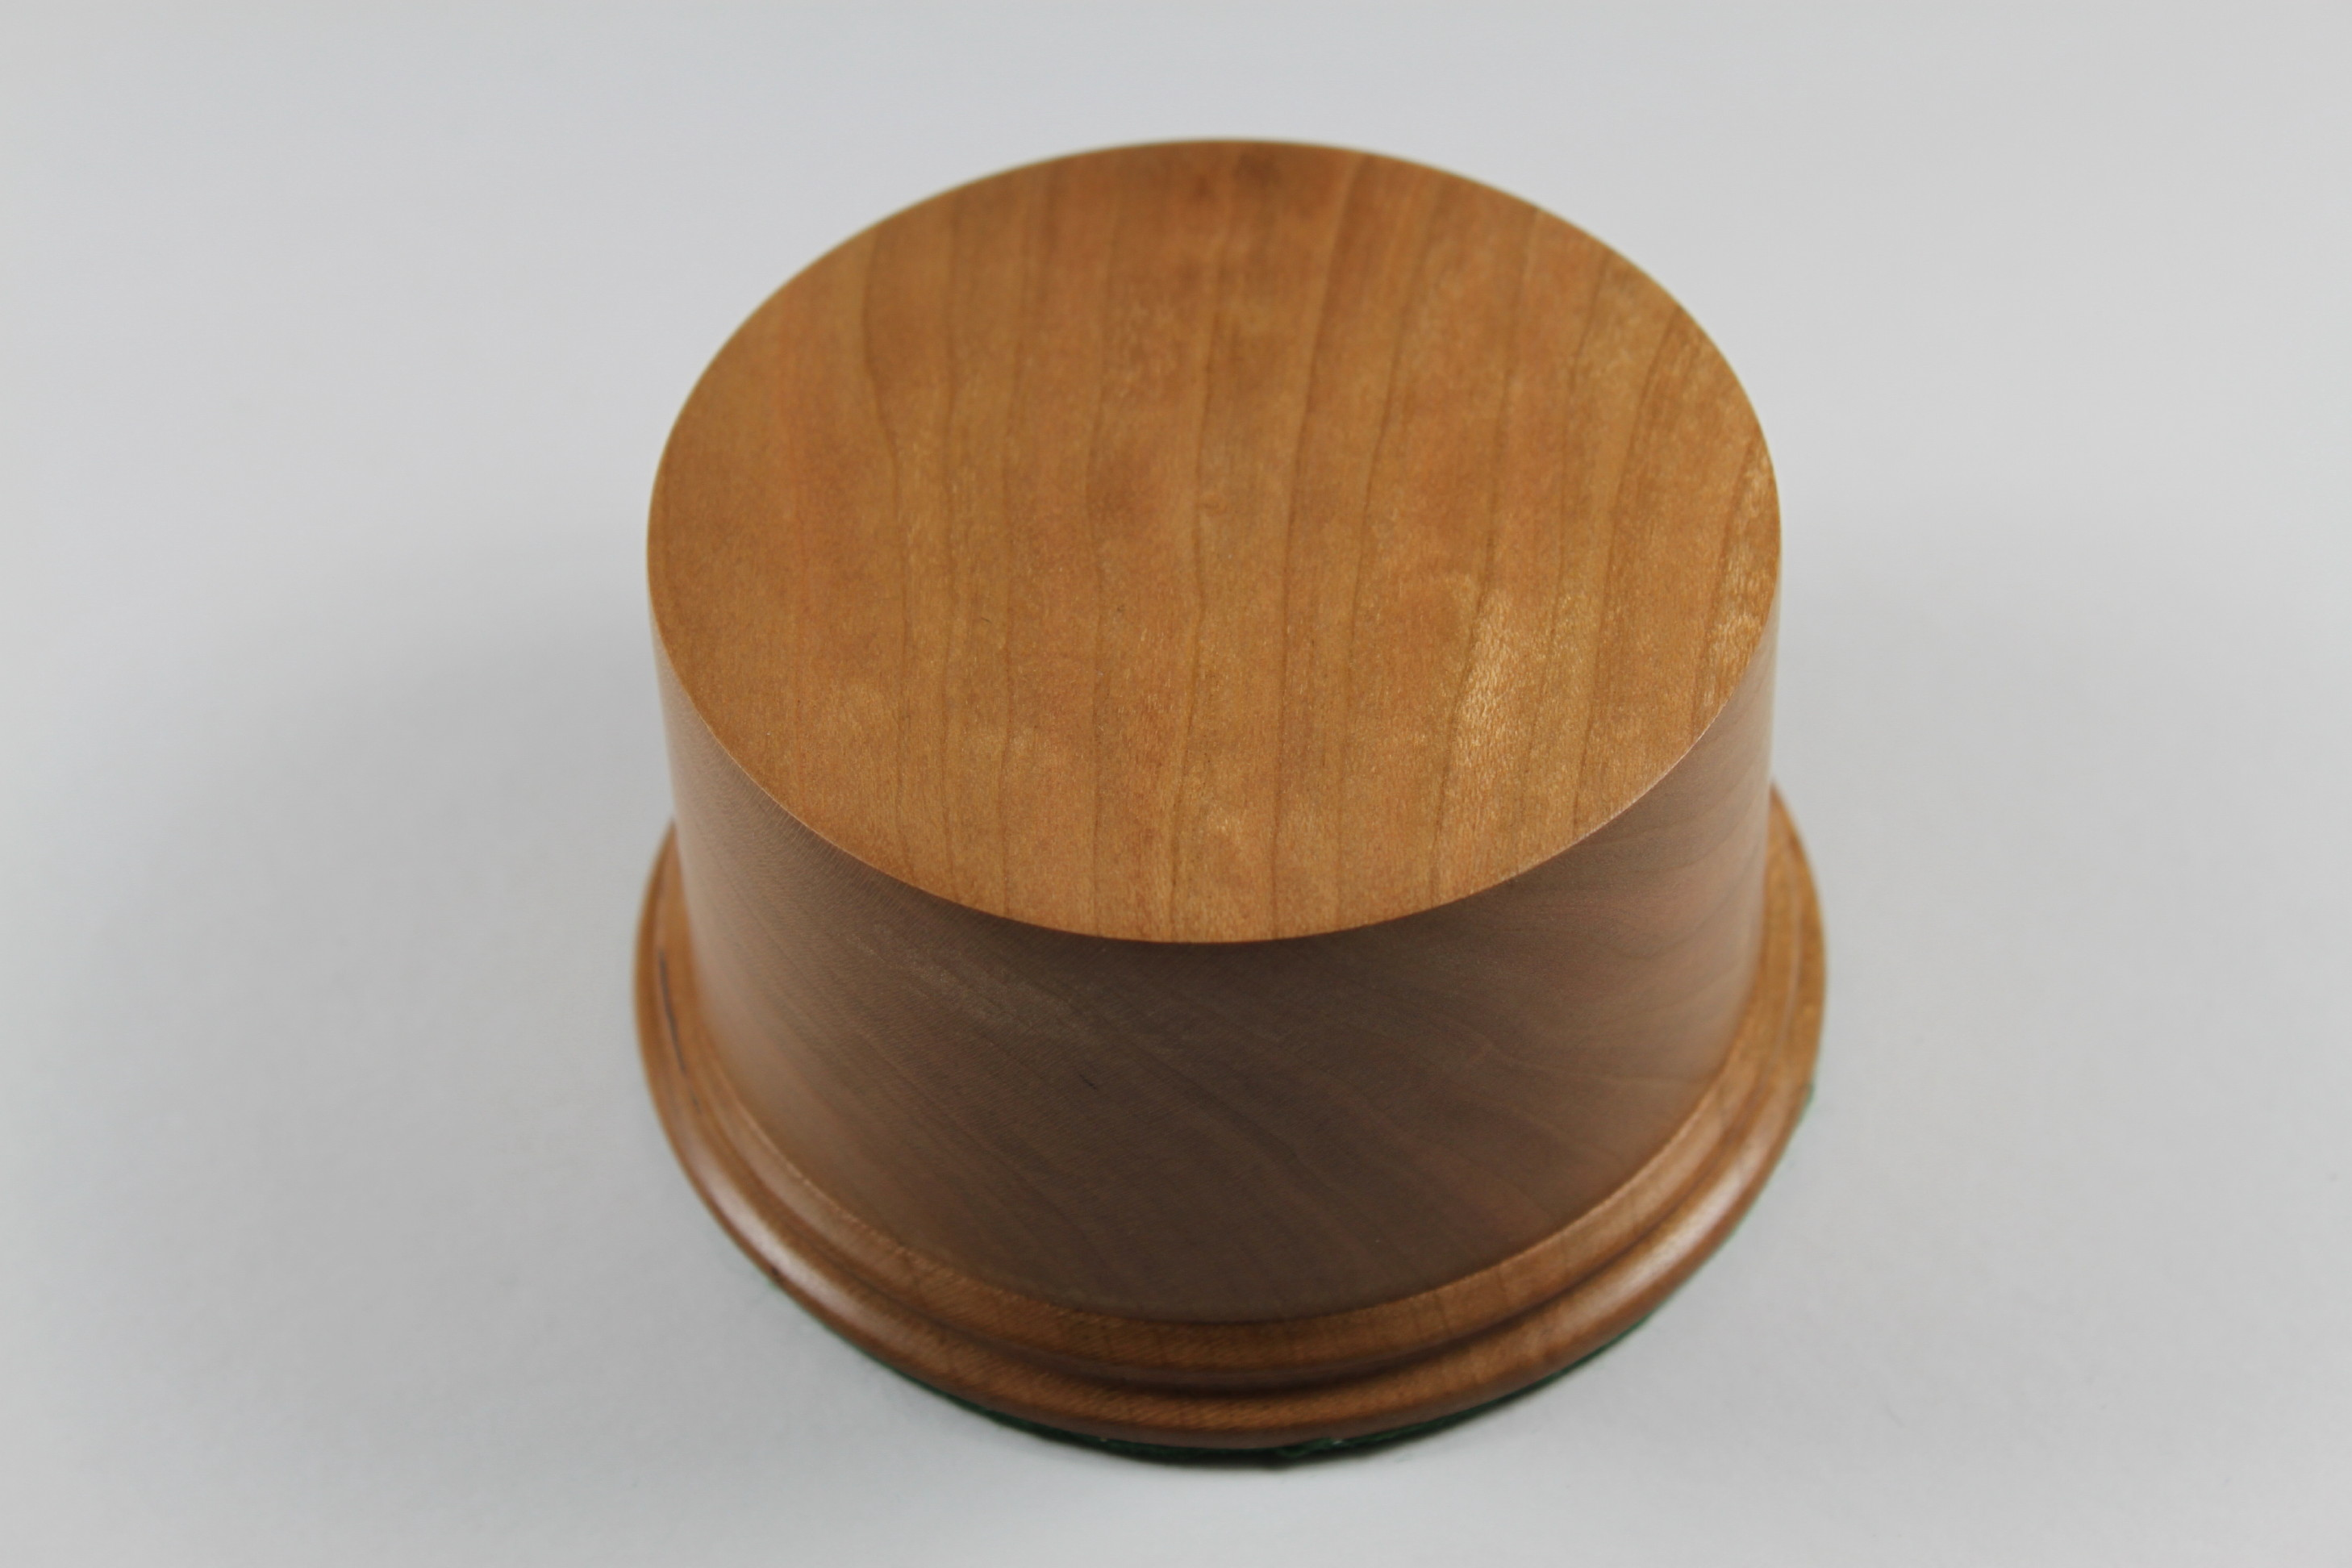 A solid wood Base made from American Cherry 50mm High with a display area of 80mm Diameter